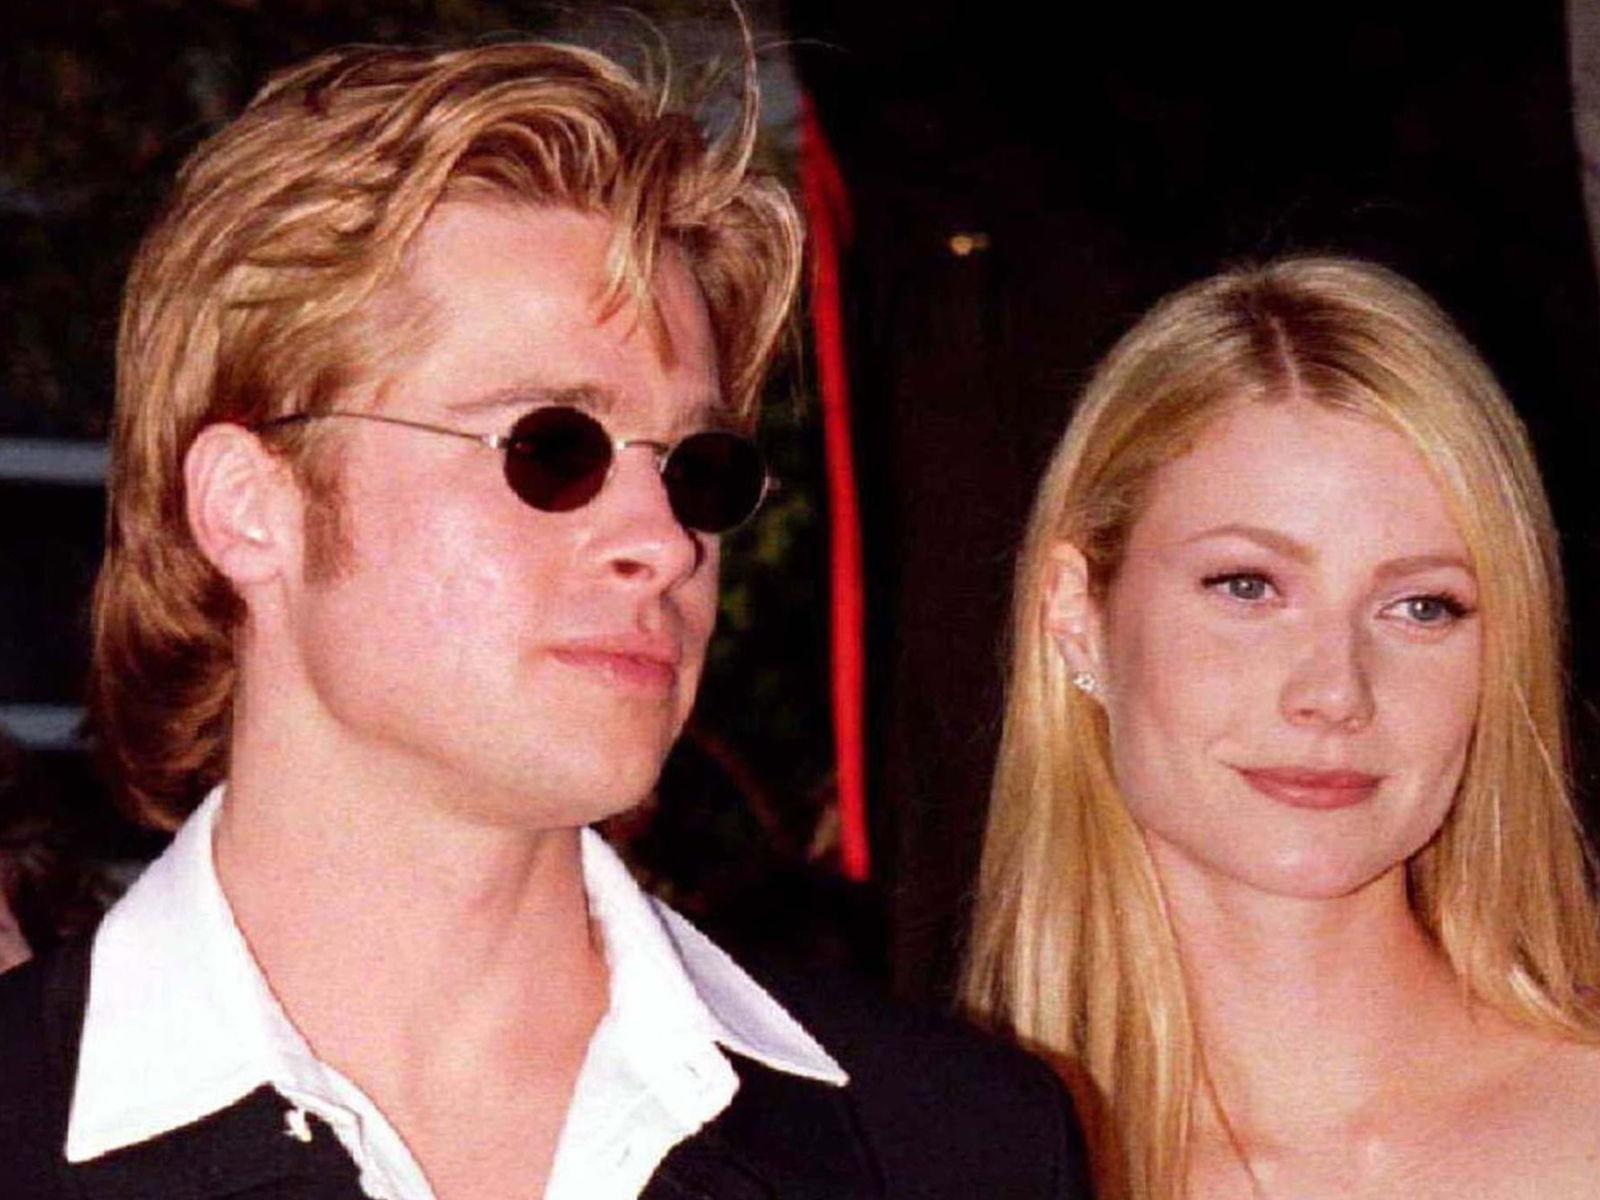 Brad Pitt was said to have confronted Weinstein over the alleged incident with Paltrow